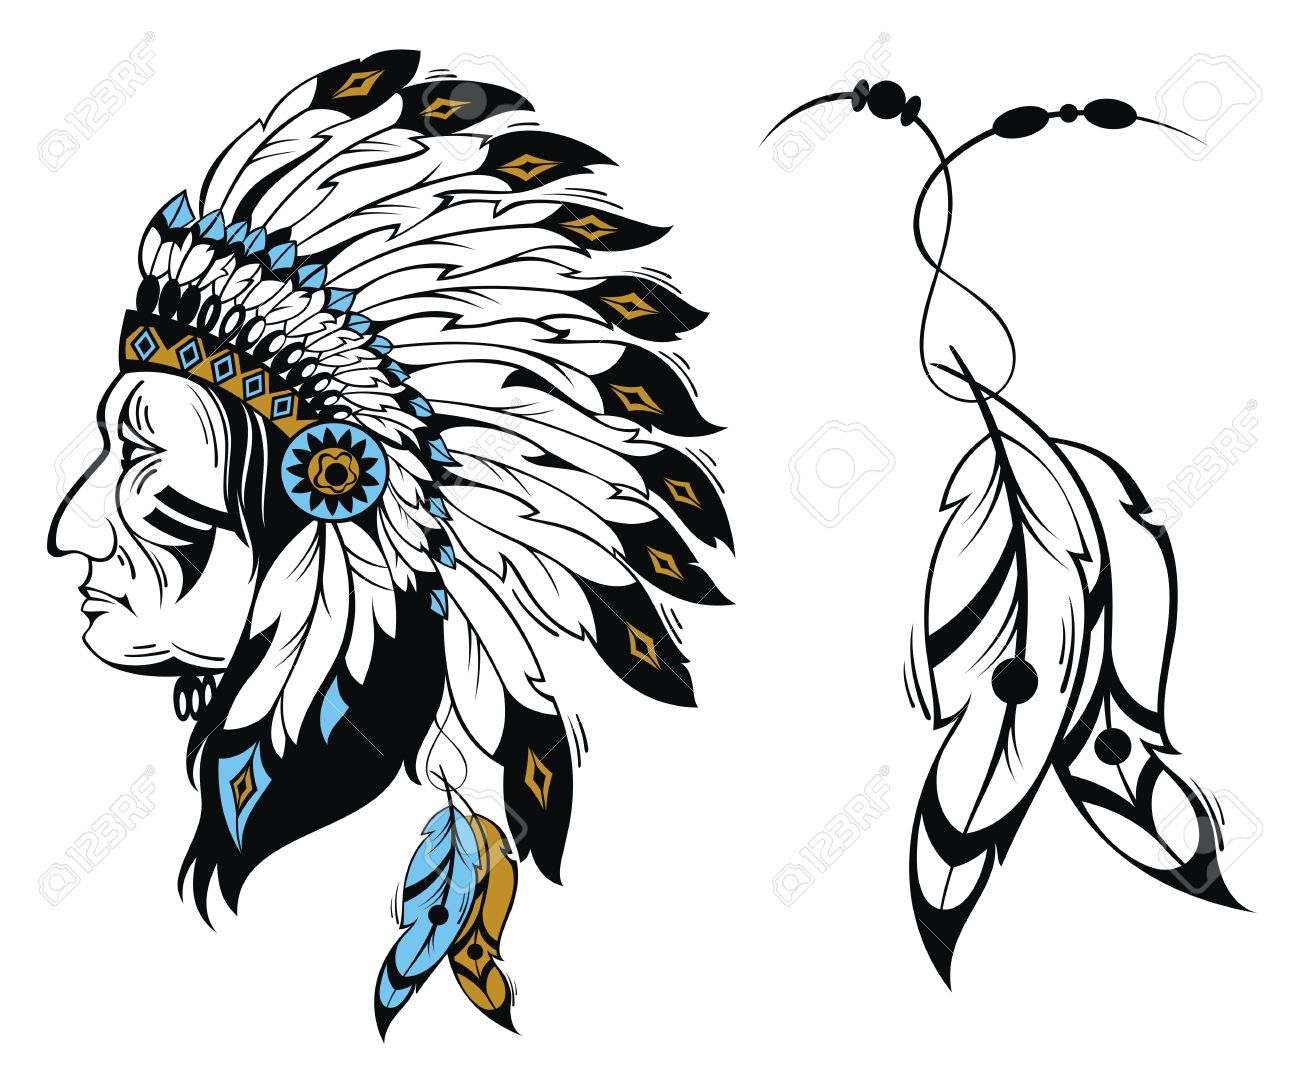 9ed0a7560e6d0 Indian Head Clipart | Free download best Indian Head Clipart on ...